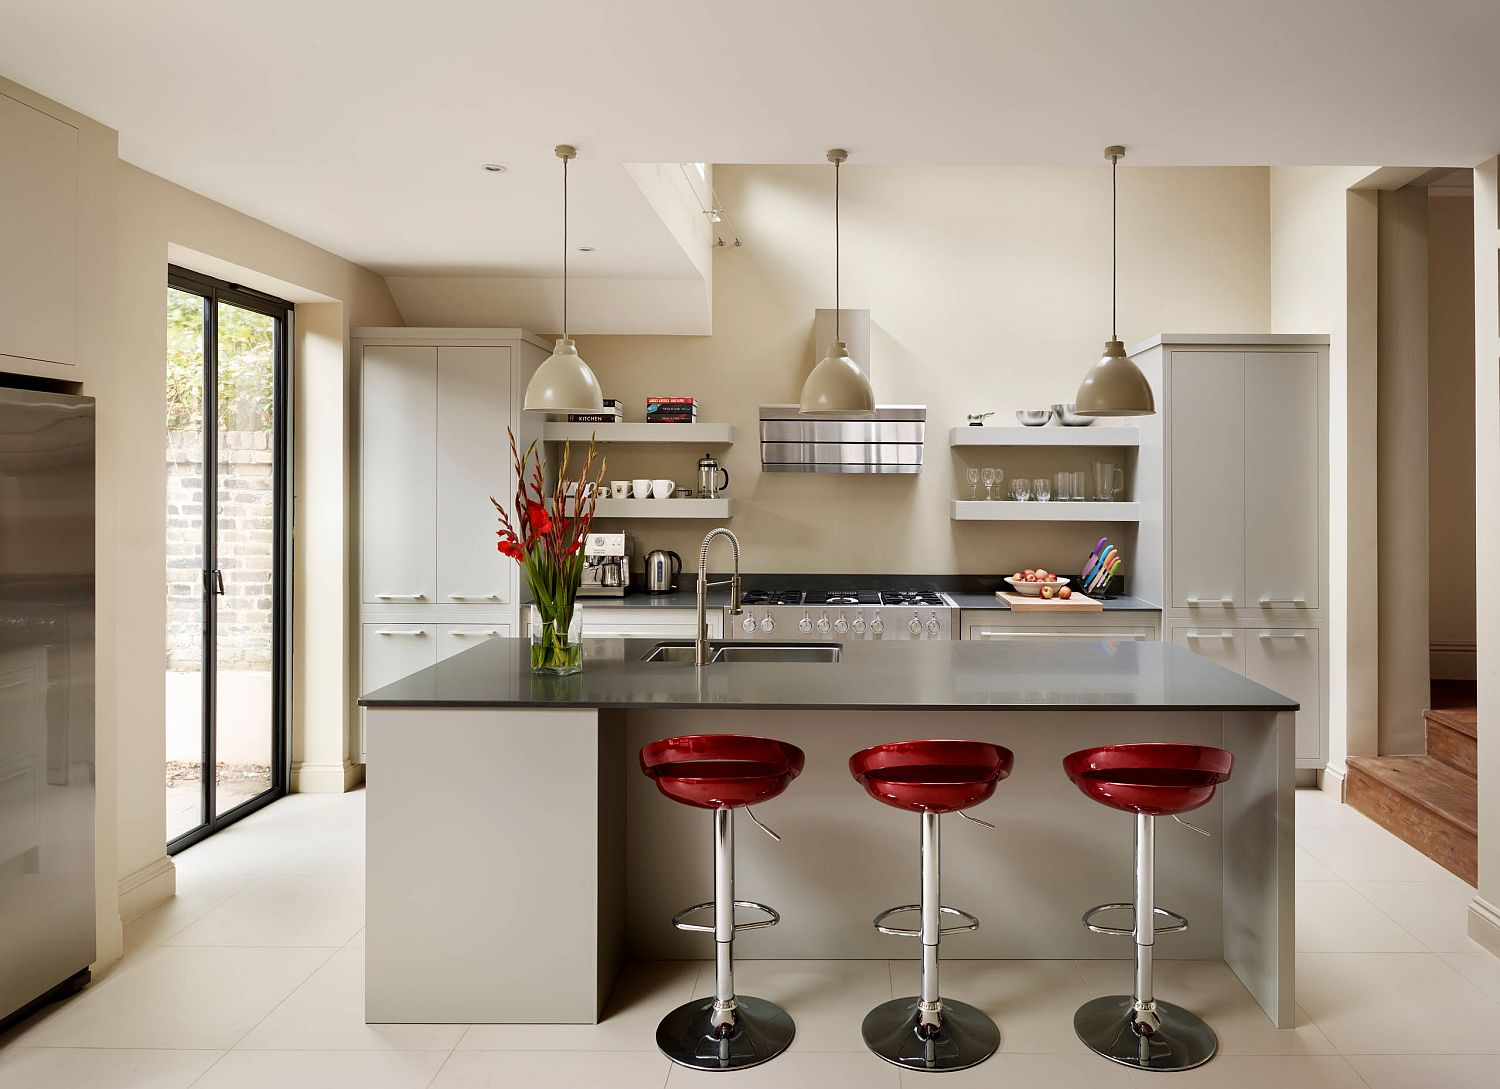 Gorgeous red bar stools feel modern and appropriate in the kitchen despite their bright viusal appeal